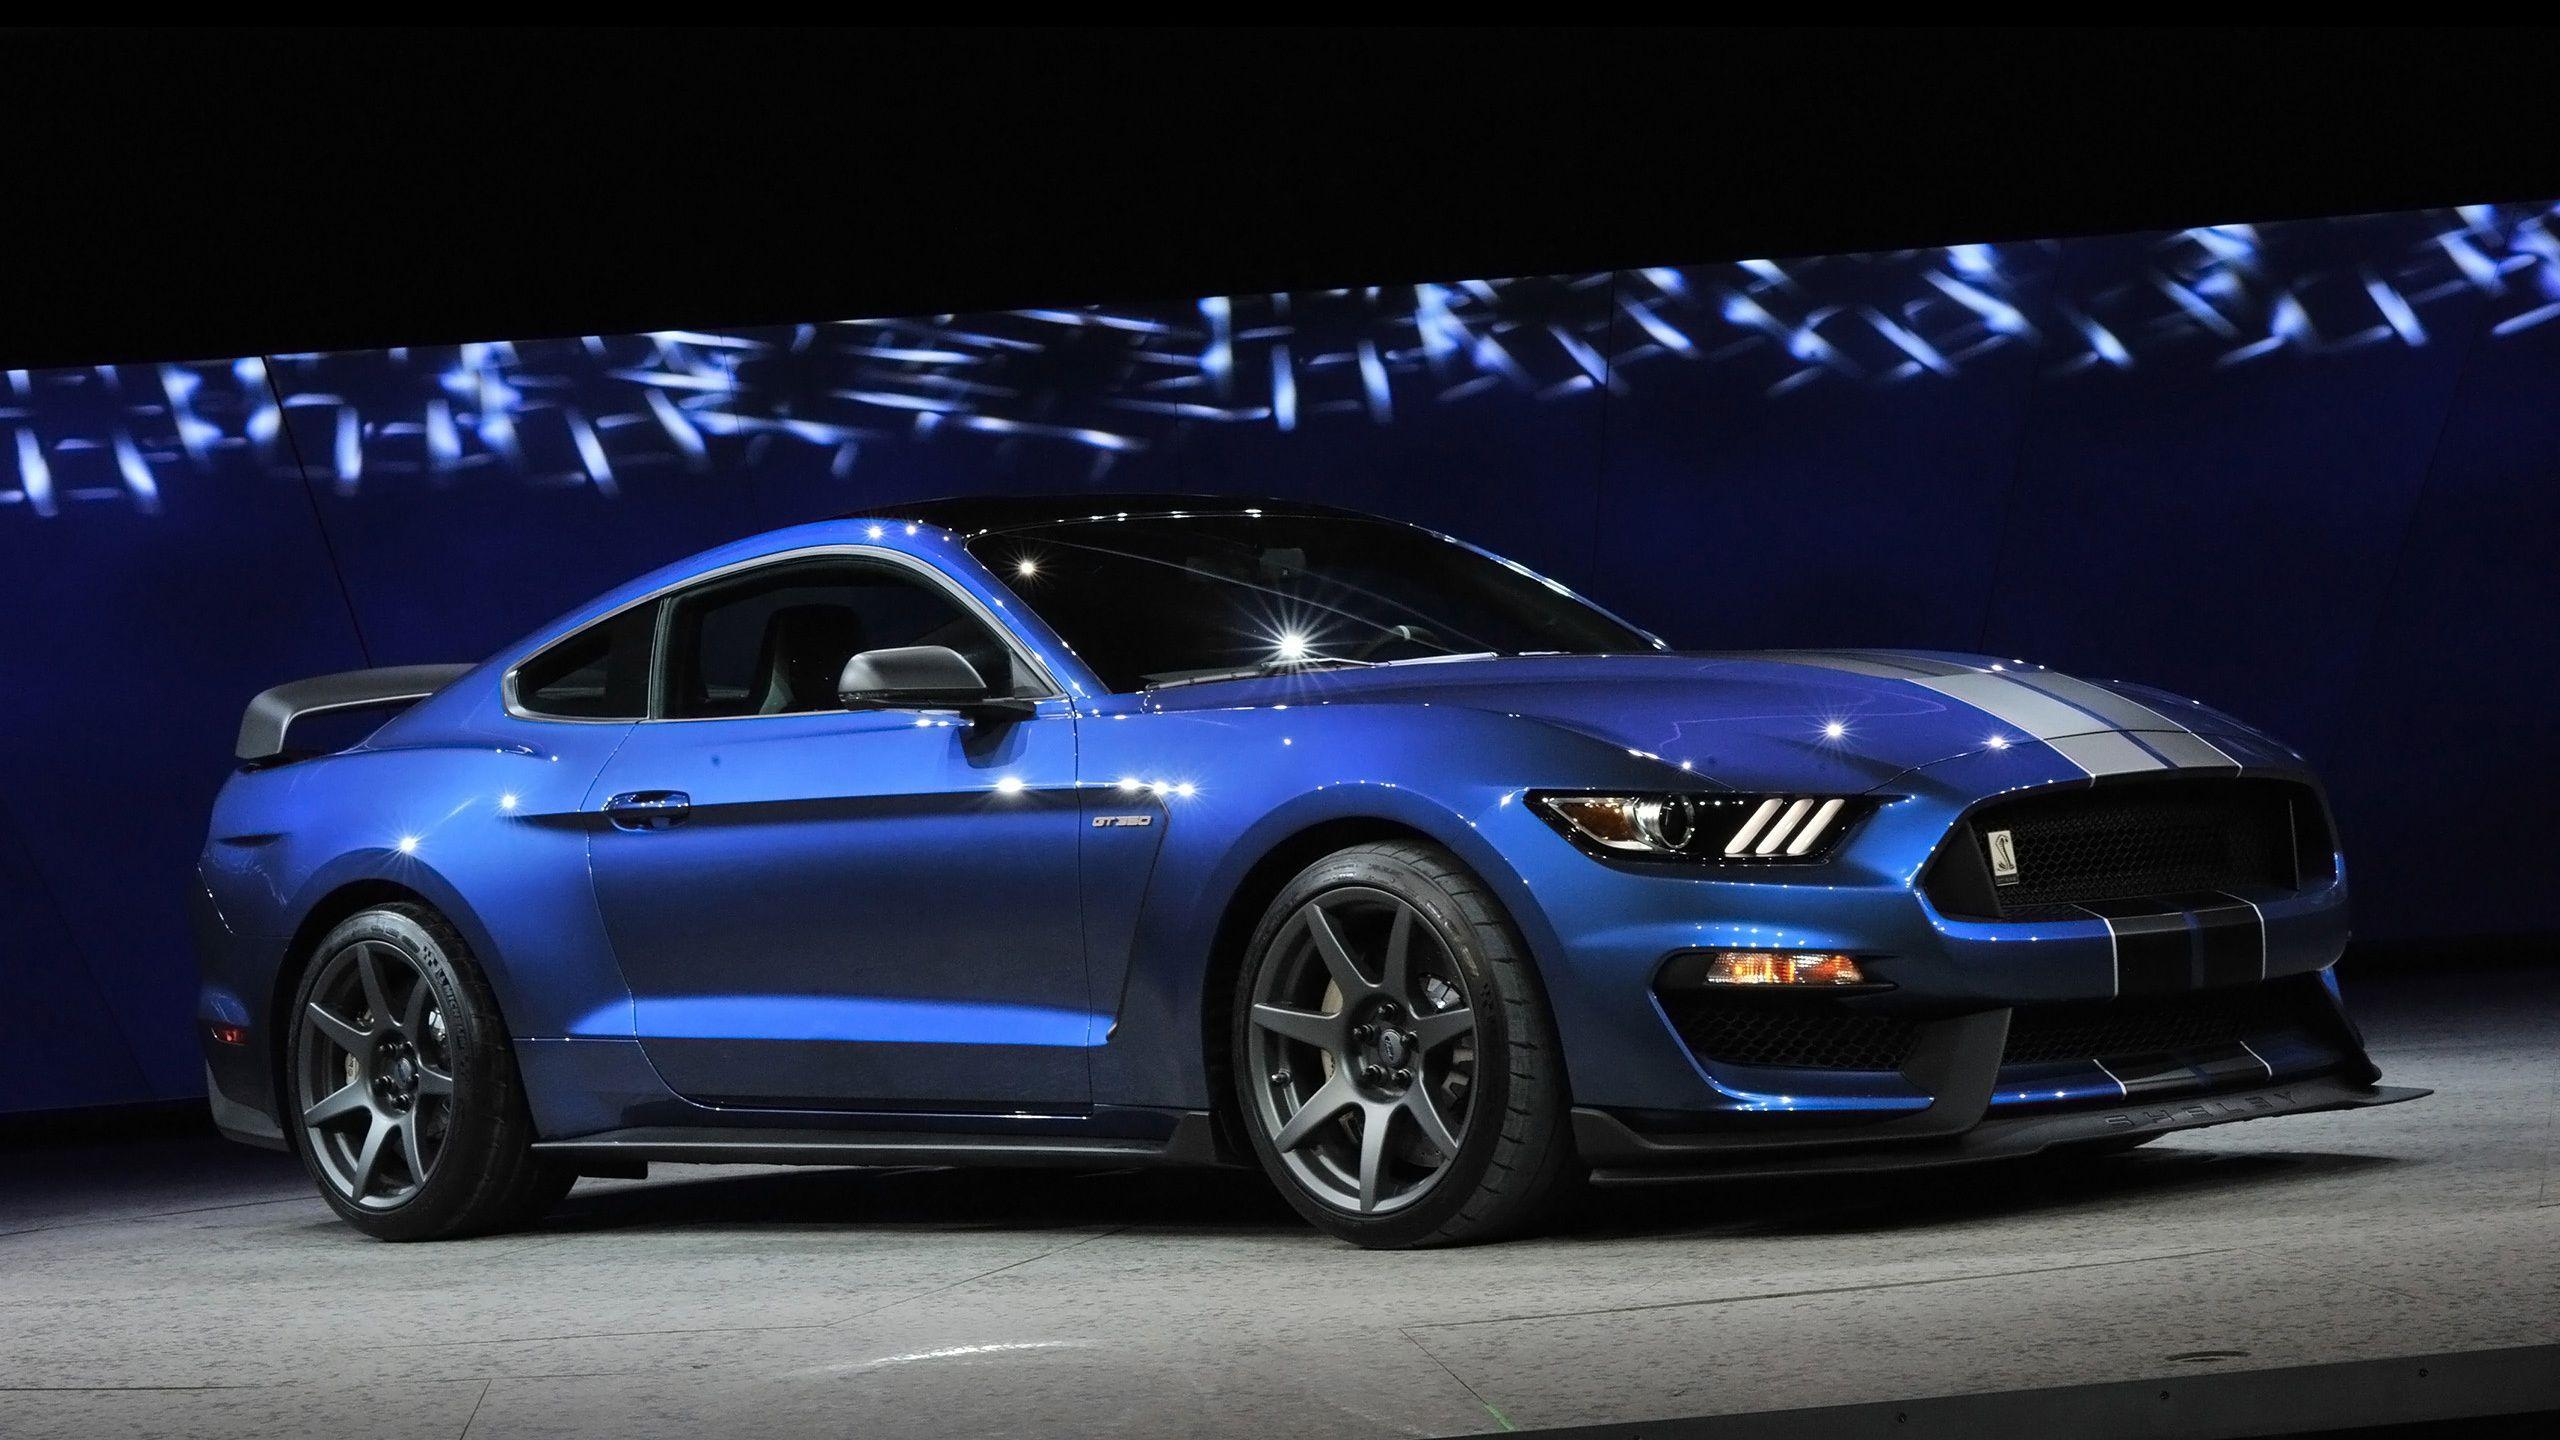 2016 Ford Shelby GT350R Mustang 2 Wallpapers